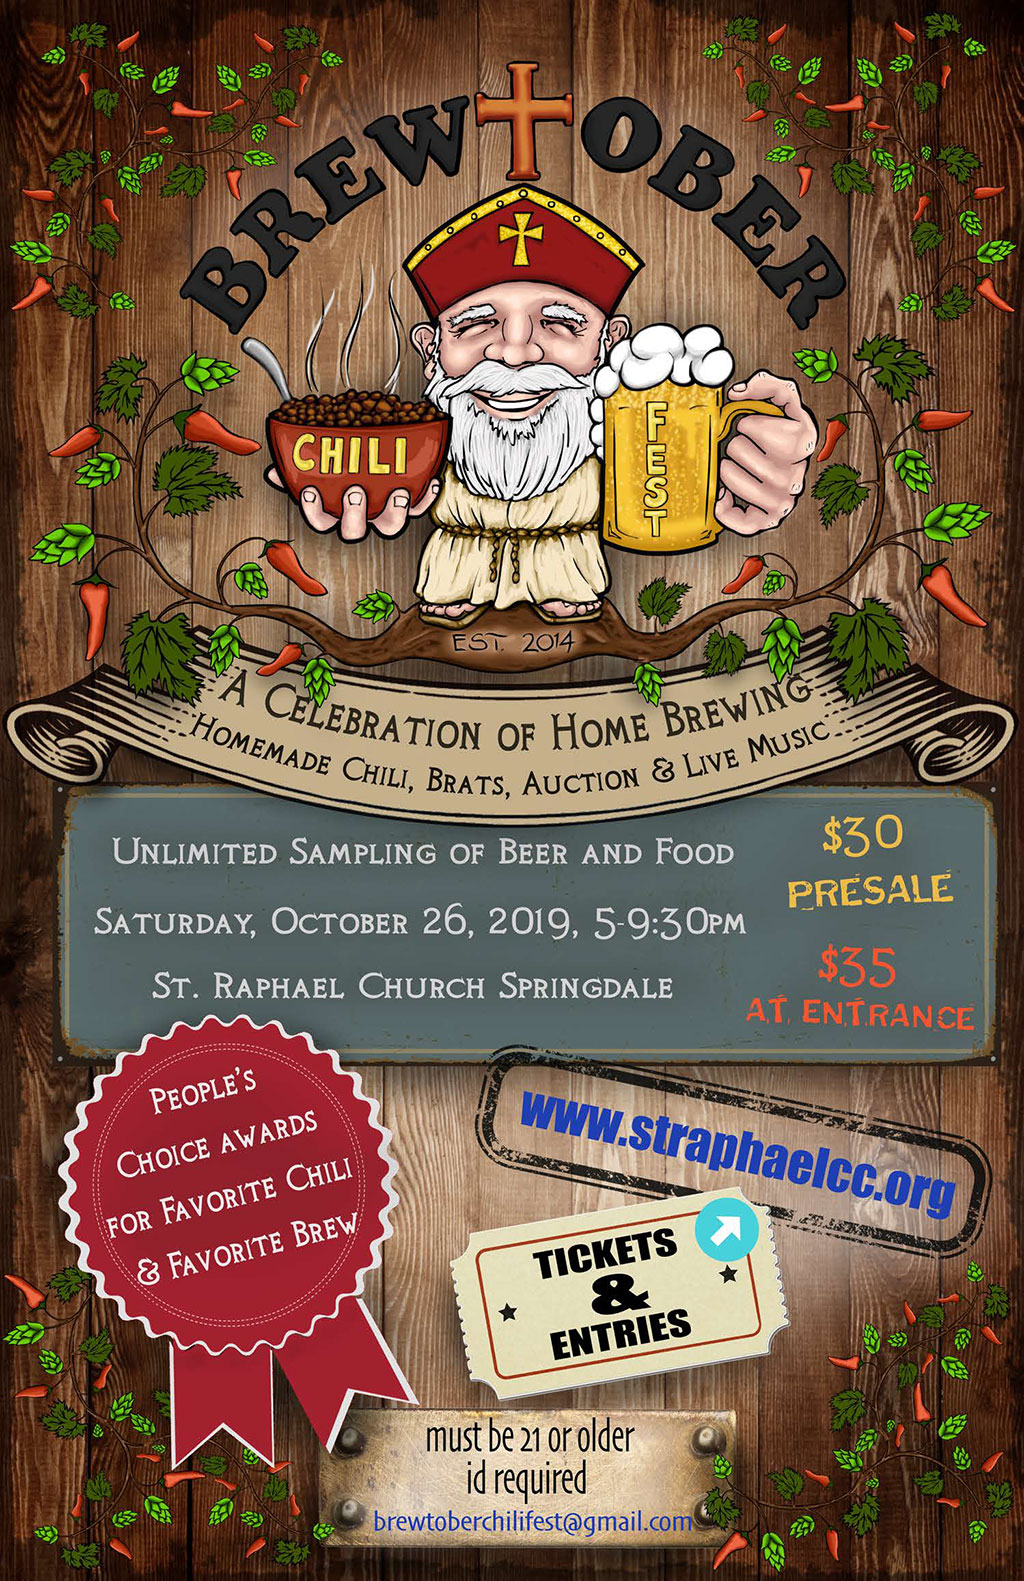 Brewtober chili and homebrew festival planned for Oct. 26 in Springdale